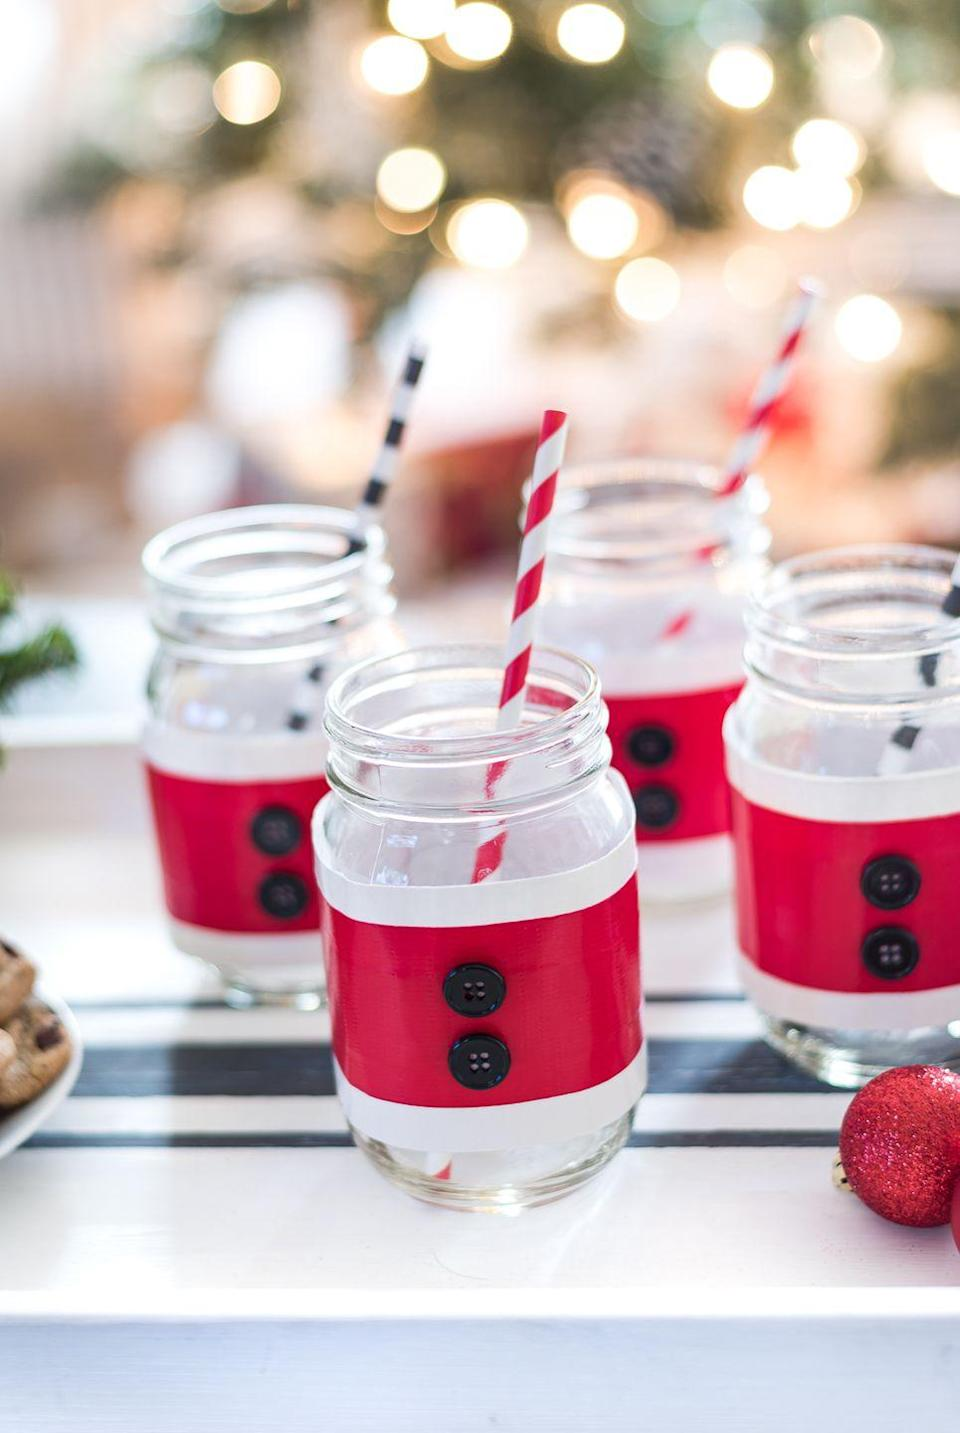 """<p>No matter what holiday drink your guests are sipping, these Santa suit Mason jar cozies will make it merrier.</p><p><strong>Get the tutorial at <a href=""""https://www.itallstartedwithpaint.com/mason-jar-santa-suit-cozy/"""" rel=""""nofollow noopener"""" target=""""_blank"""" data-ylk=""""slk:It All Started With Paint"""" class=""""link rapid-noclick-resp"""">It All Started With Paint</a>.</strong></p><p><a class=""""link rapid-noclick-resp"""" href=""""https://www.amazon.com/Duck-Brand-1265014-Inches-Single/dp/B002TOL428/ref=asc_df_B002TOL428/?tag=syn-yahoo-20&ascsubtag=%5Bartid%7C10050.g.2132%5Bsrc%7Cyahoo-us"""" rel=""""nofollow noopener"""" target=""""_blank"""" data-ylk=""""slk:SHOP RED DUCT TAPE"""">SHOP RED DUCT TAPE</a><br></p>"""